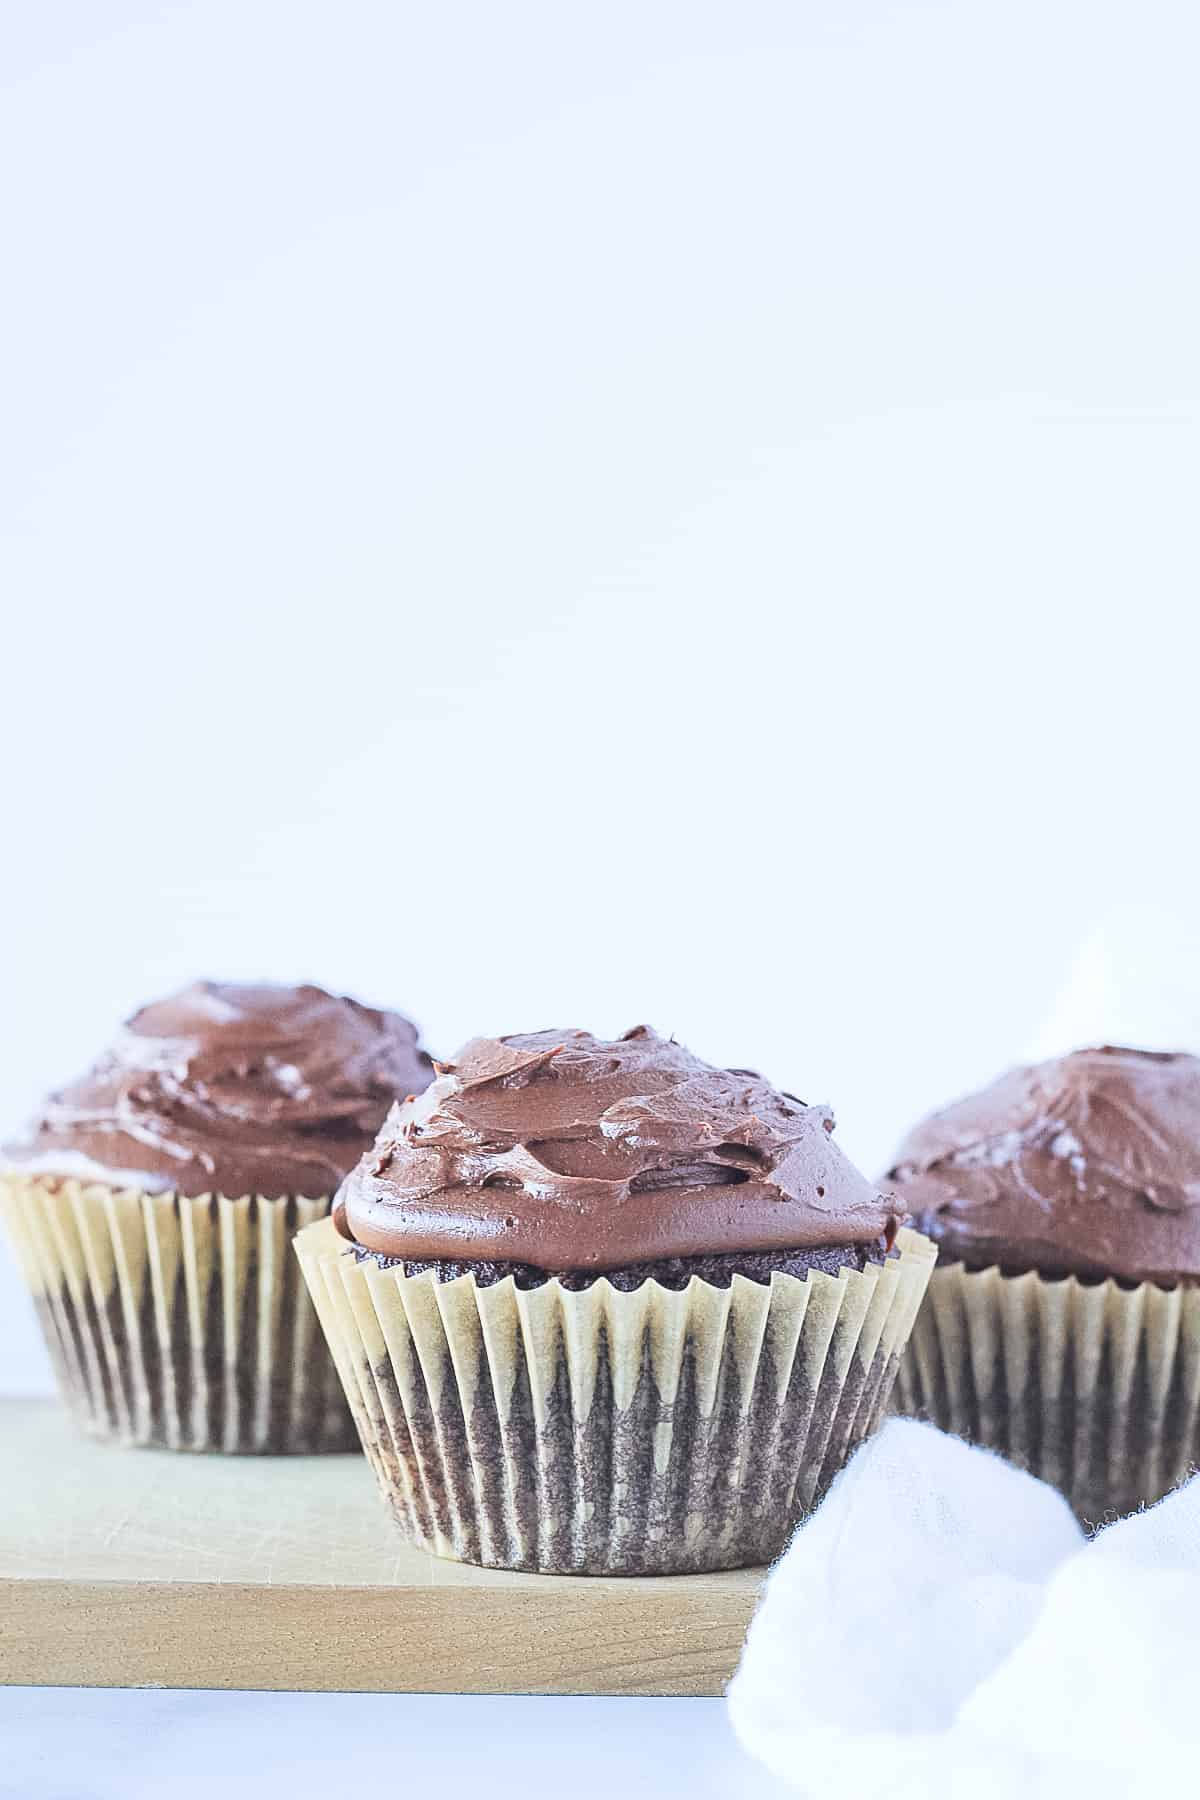 Three Paleo Chocolate Cupcakes topped with chocolate ganache frosting.